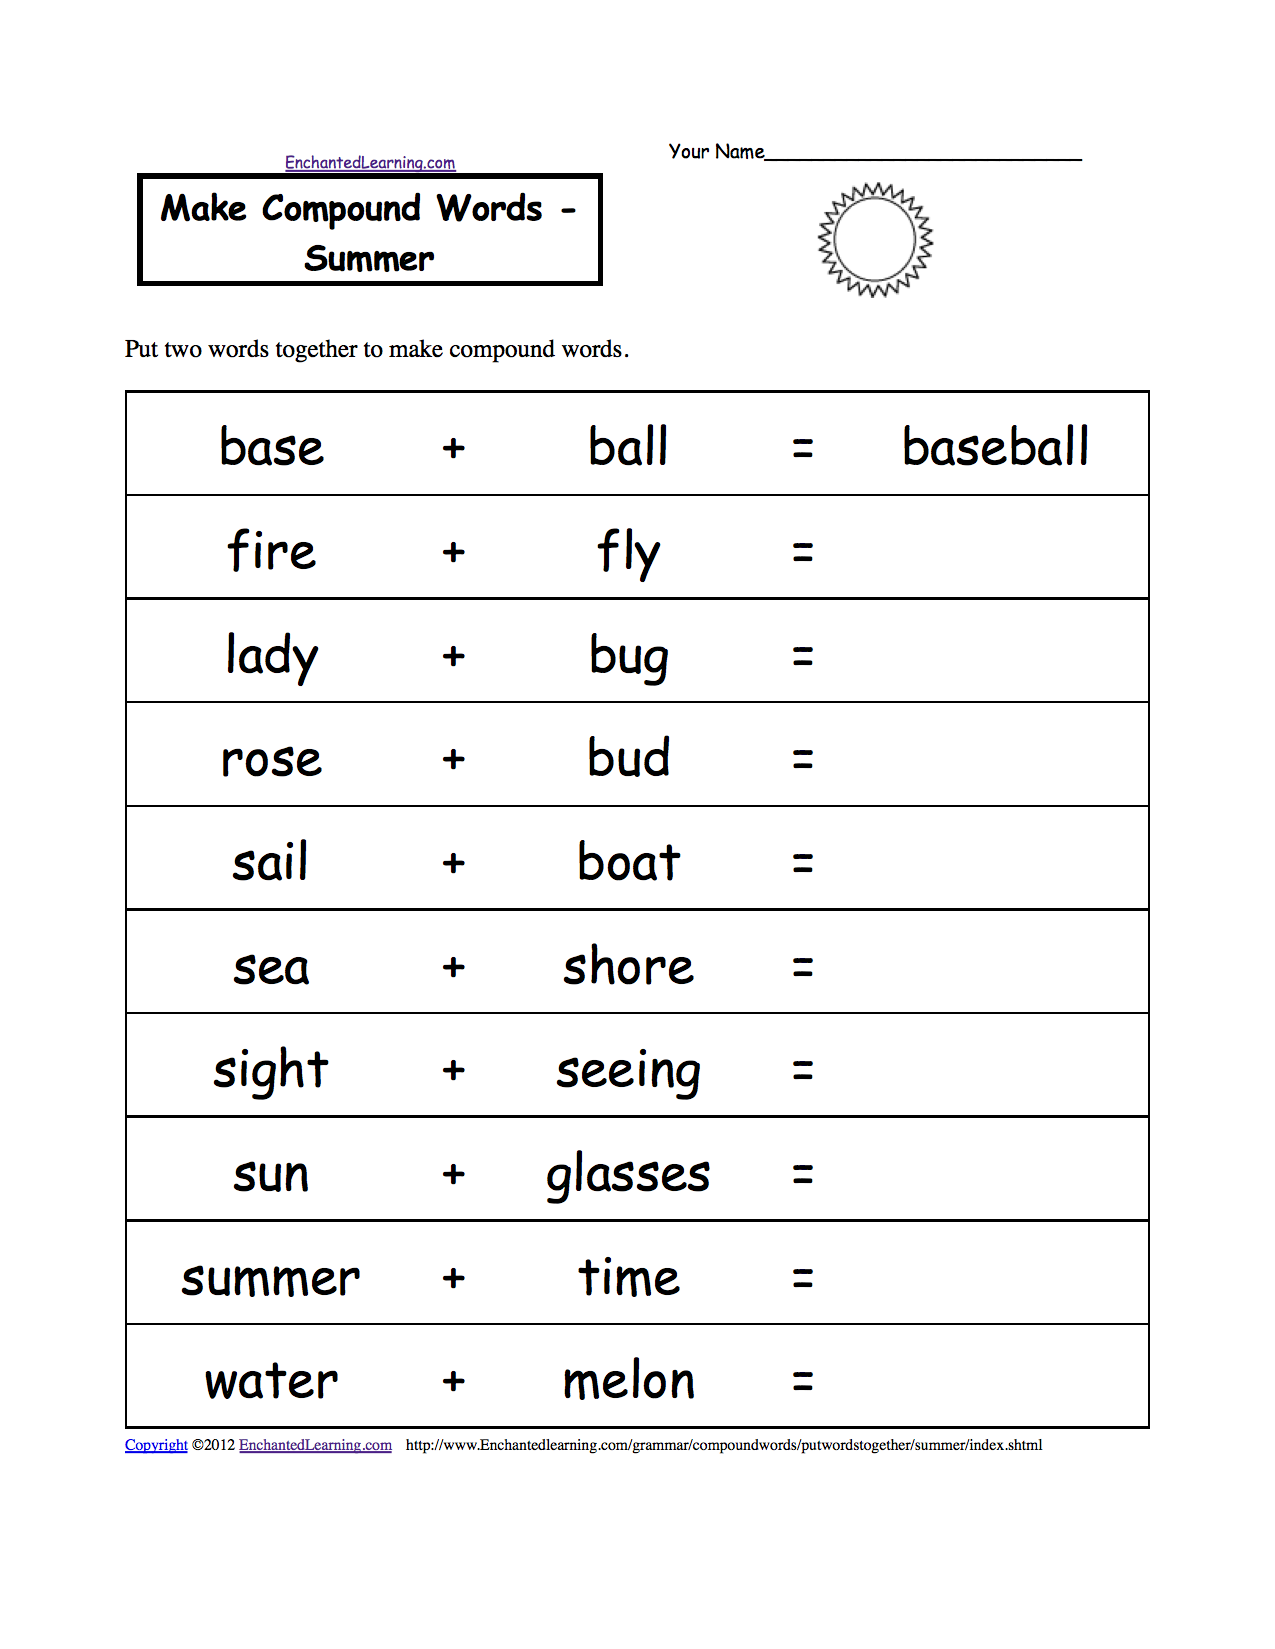 Printables Printable Spelling Worksheets spelling worksheets summer k 3 theme page at enchantedlearning com make compound words printable worksheet